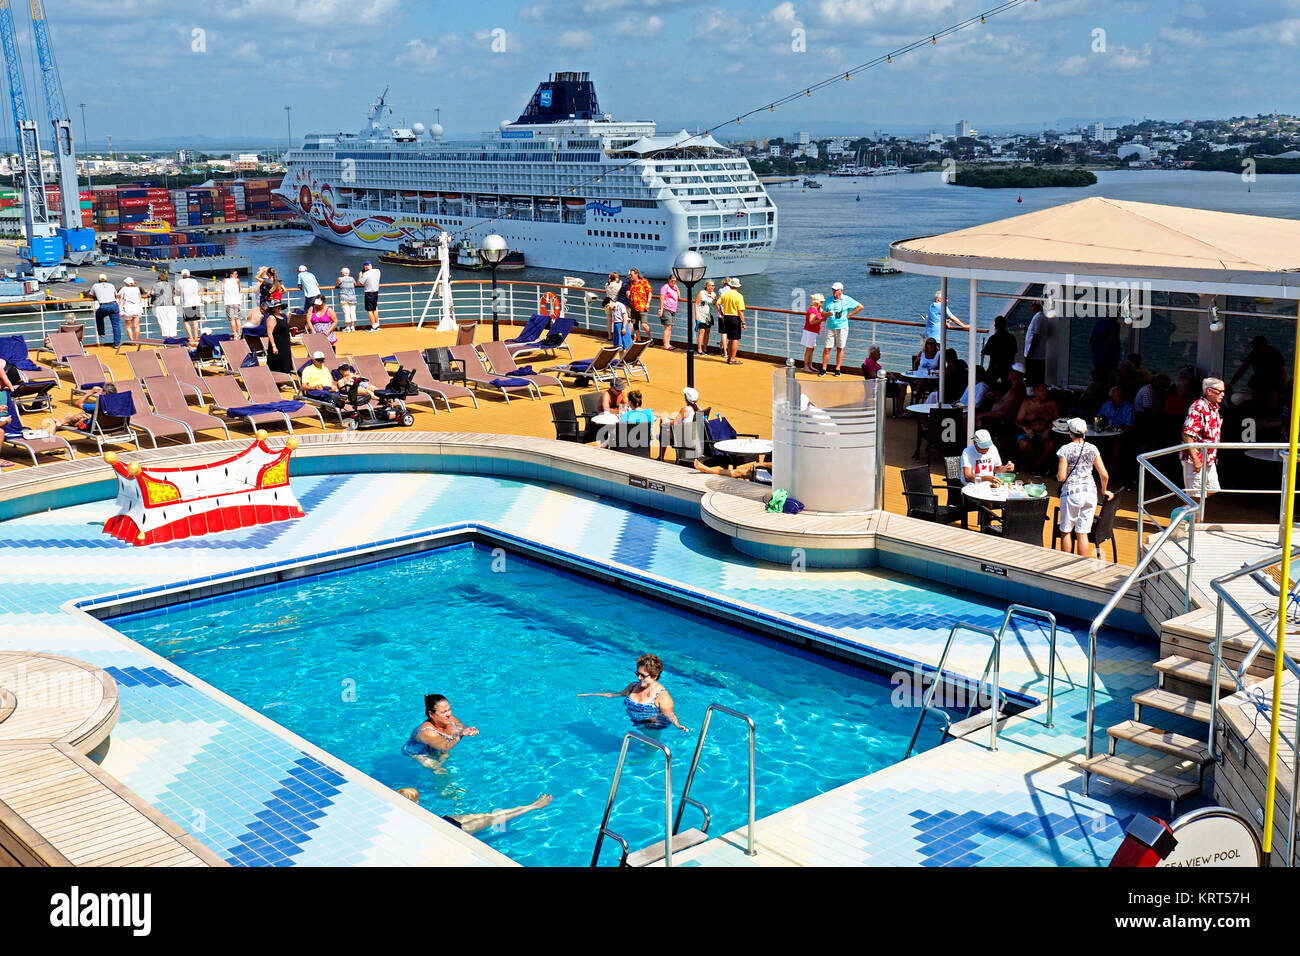 Rear pool deck of Holland America Line's Zuiderdam cruise ship with Norwegian Sun in background at port of Cartagena, - Stock Image